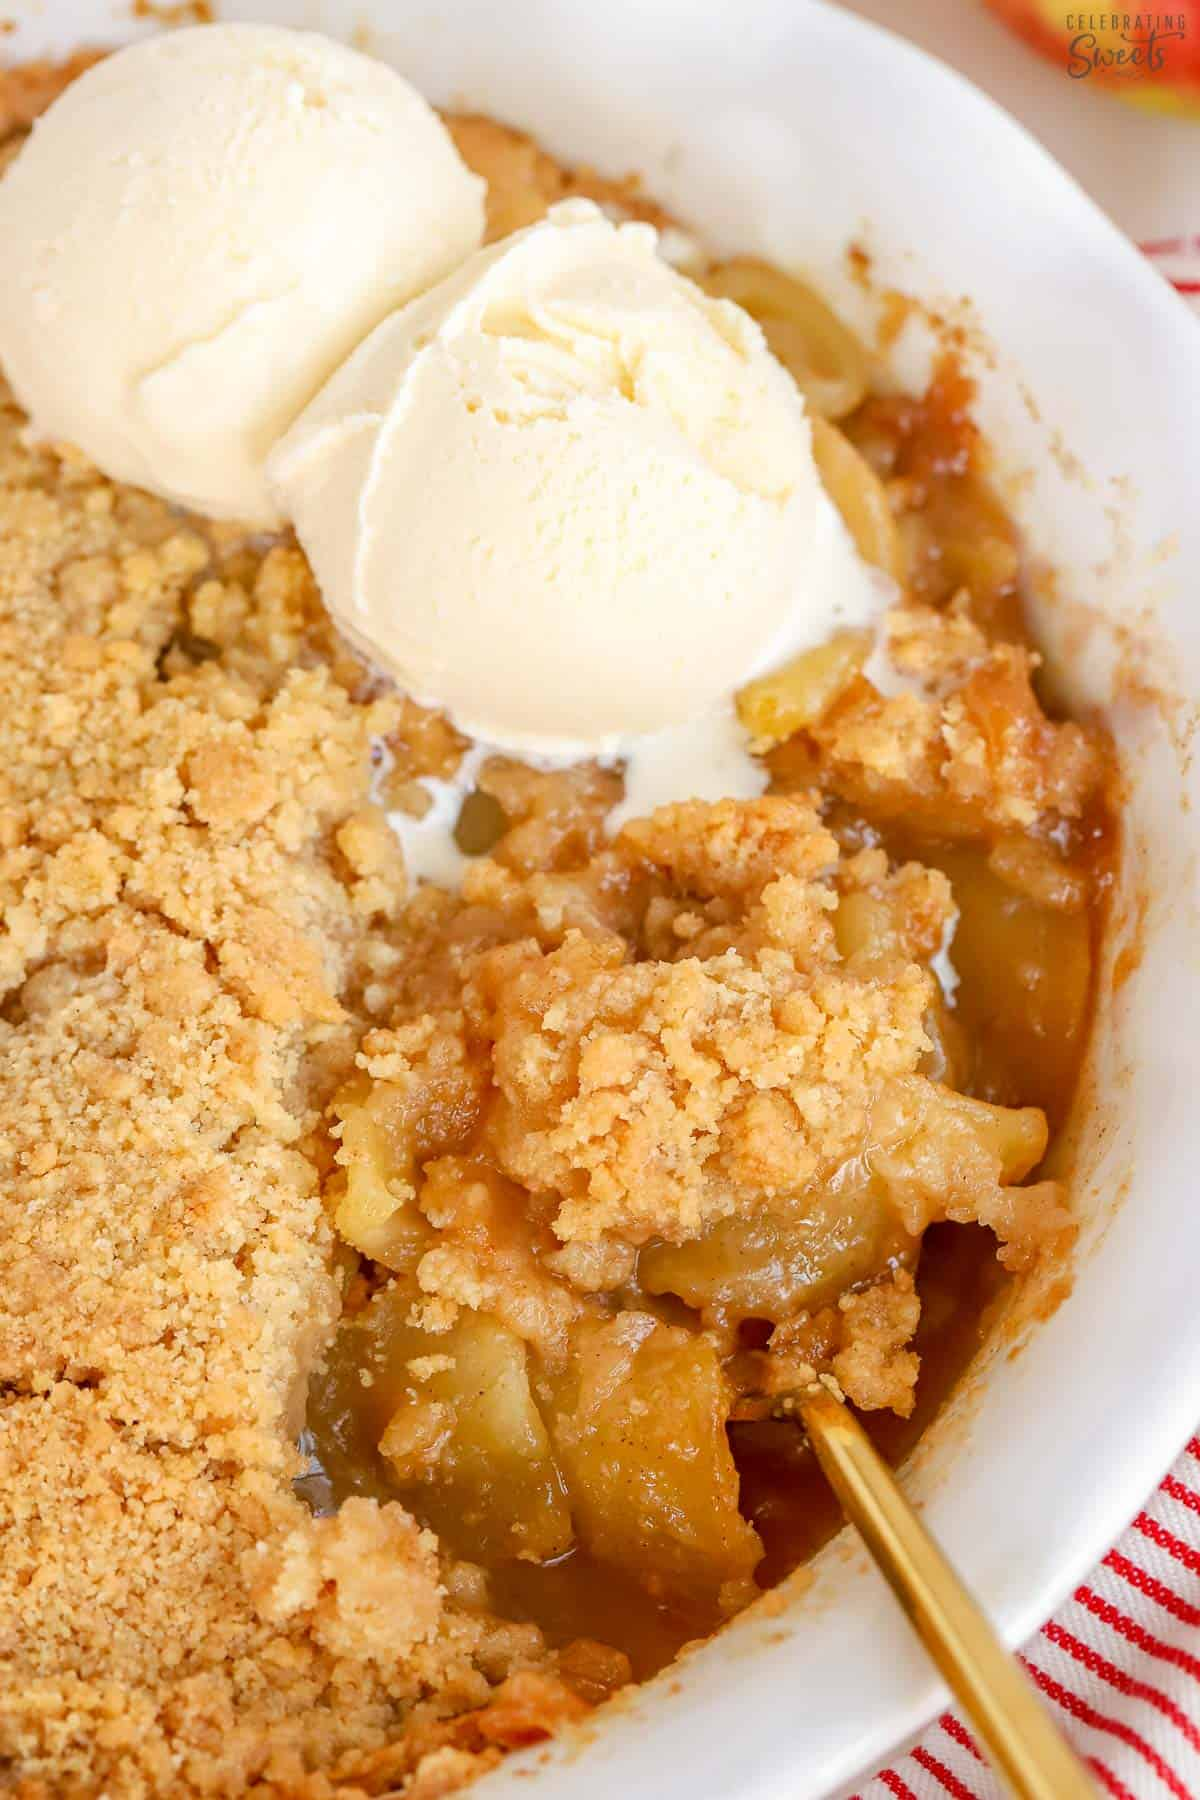 Apple crumble topped with two scoops of vanilla ice cream in a white baking dish.